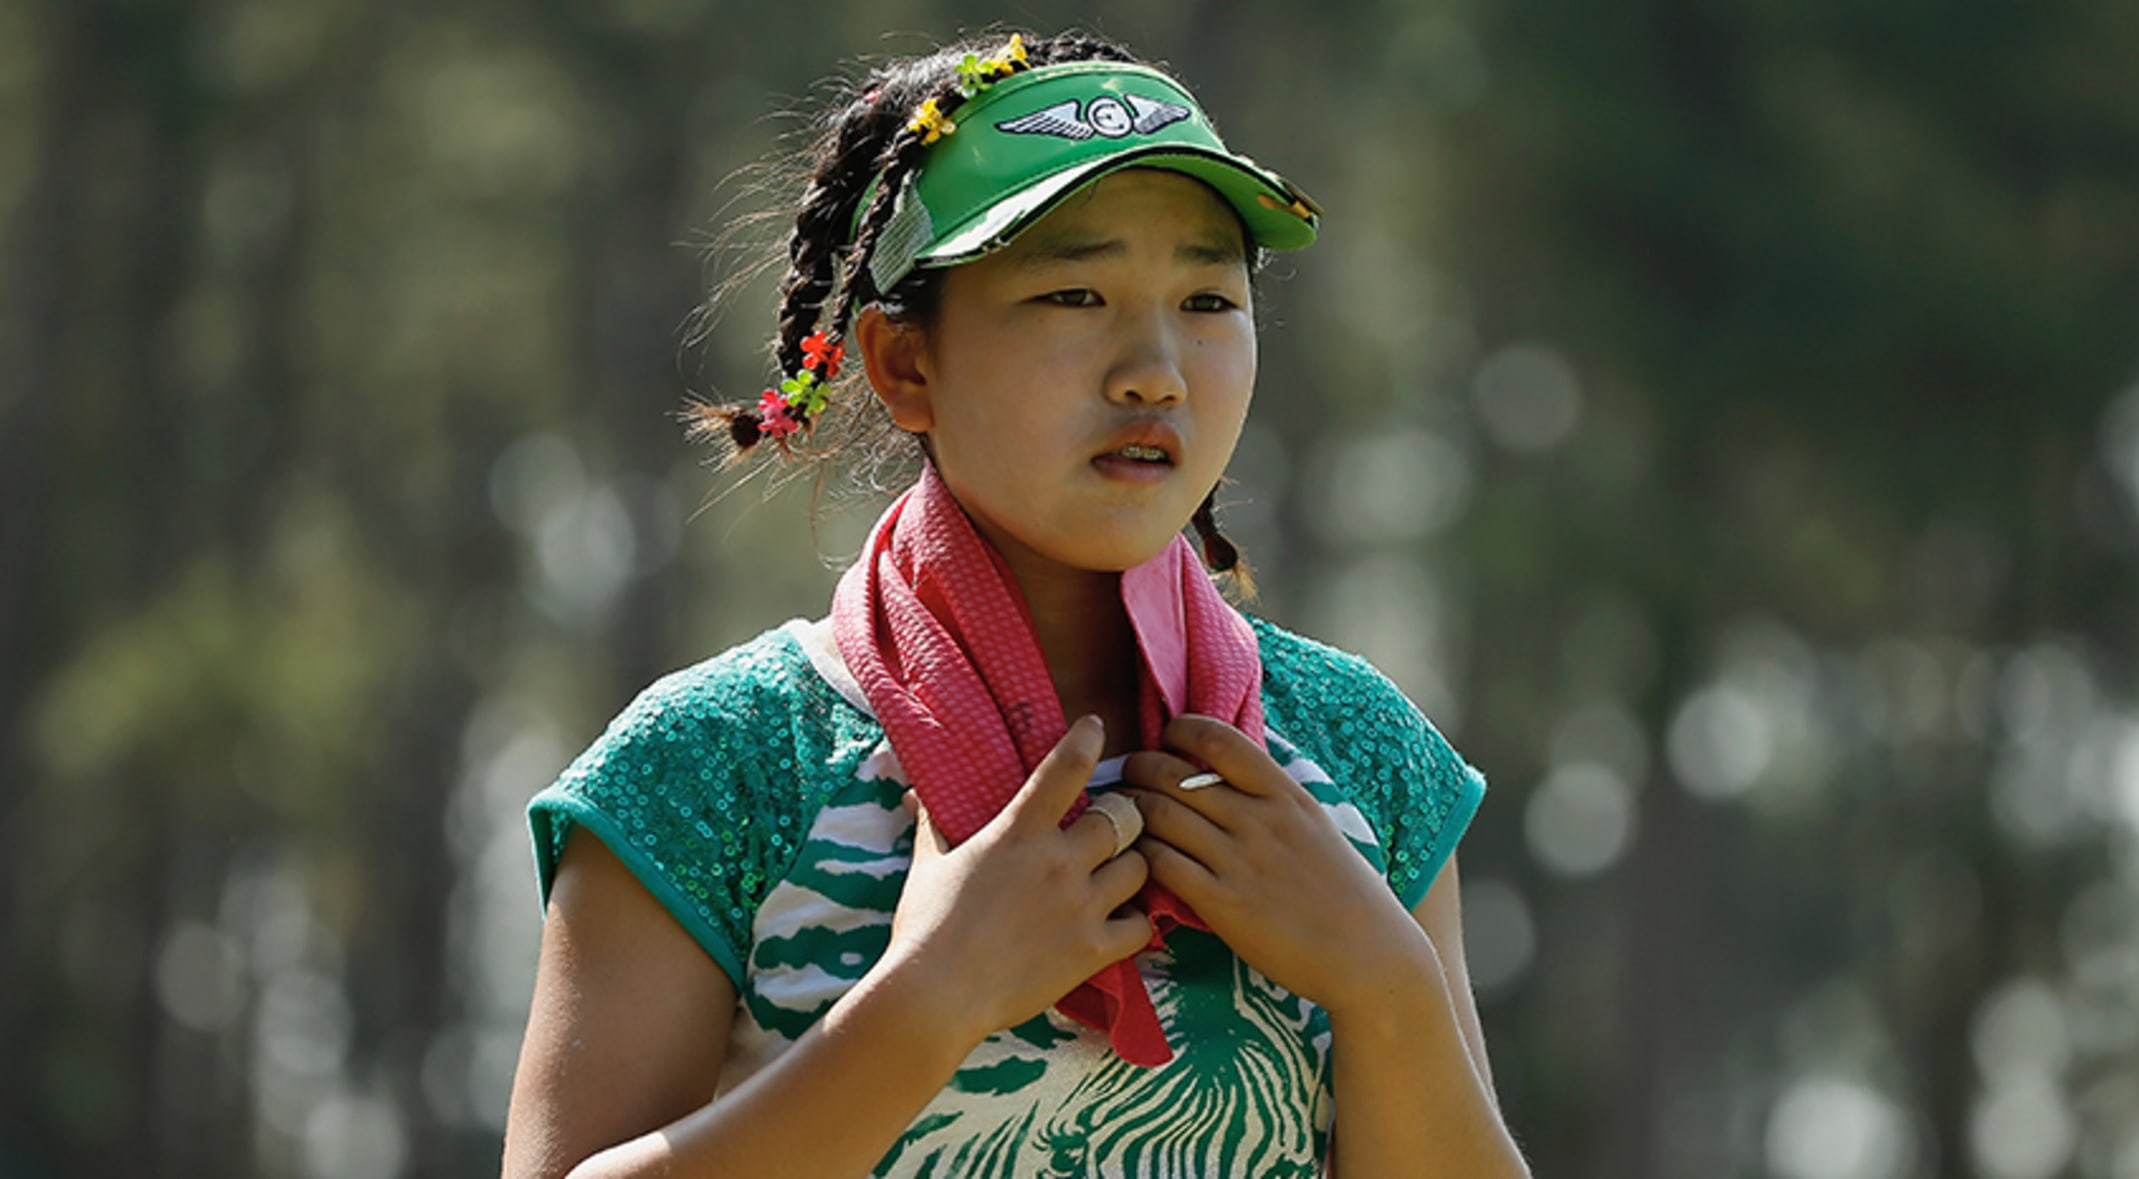 Lucy Li 11 Could Be The Youngest Lpga Player To Make The Cut In